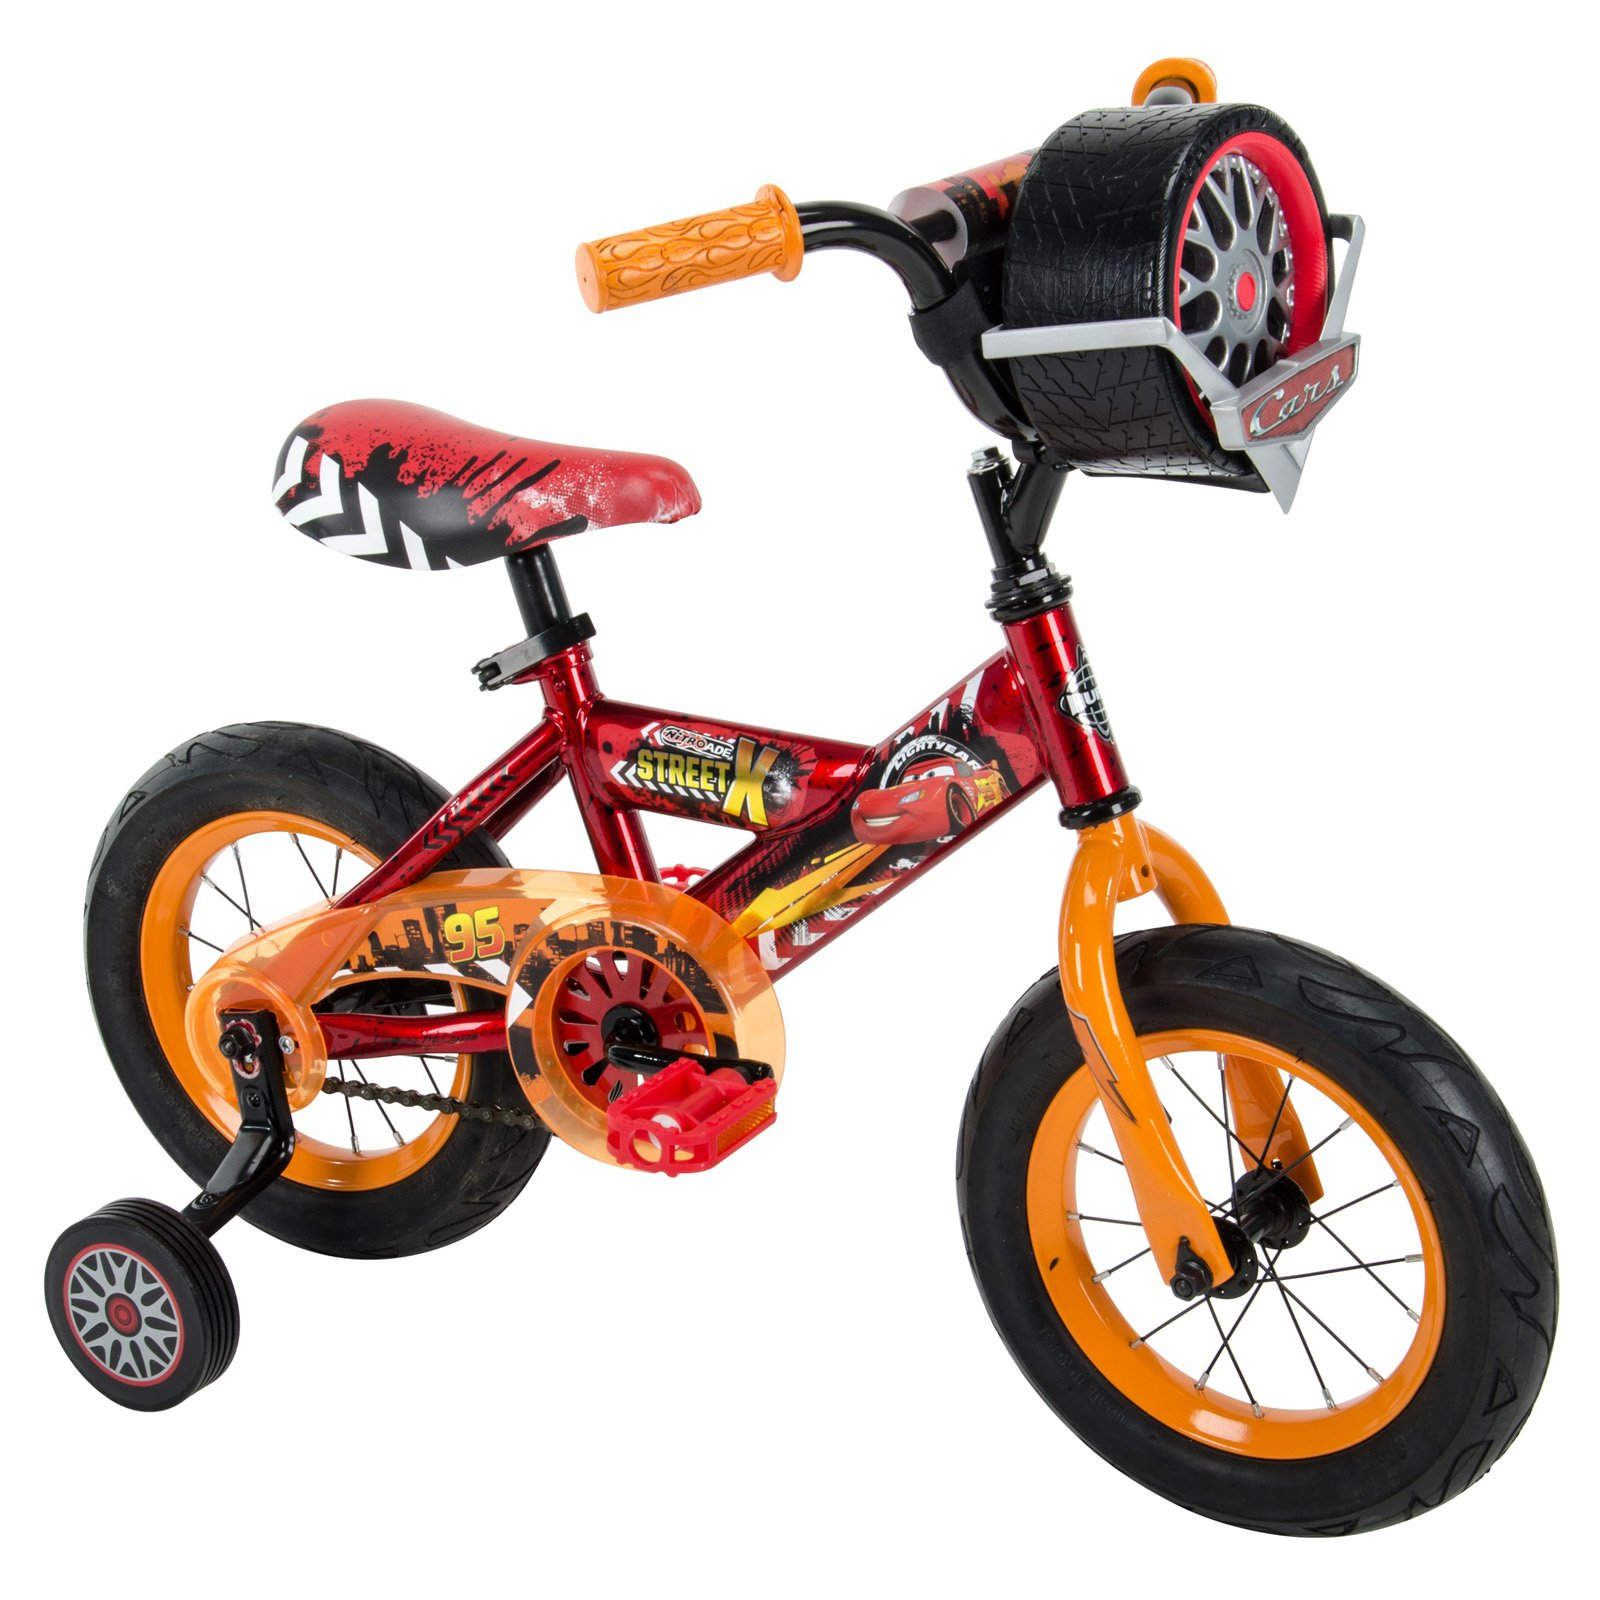 Huffy 12 in. Disney Cars 3 Bike with Race-Ready Tire Case